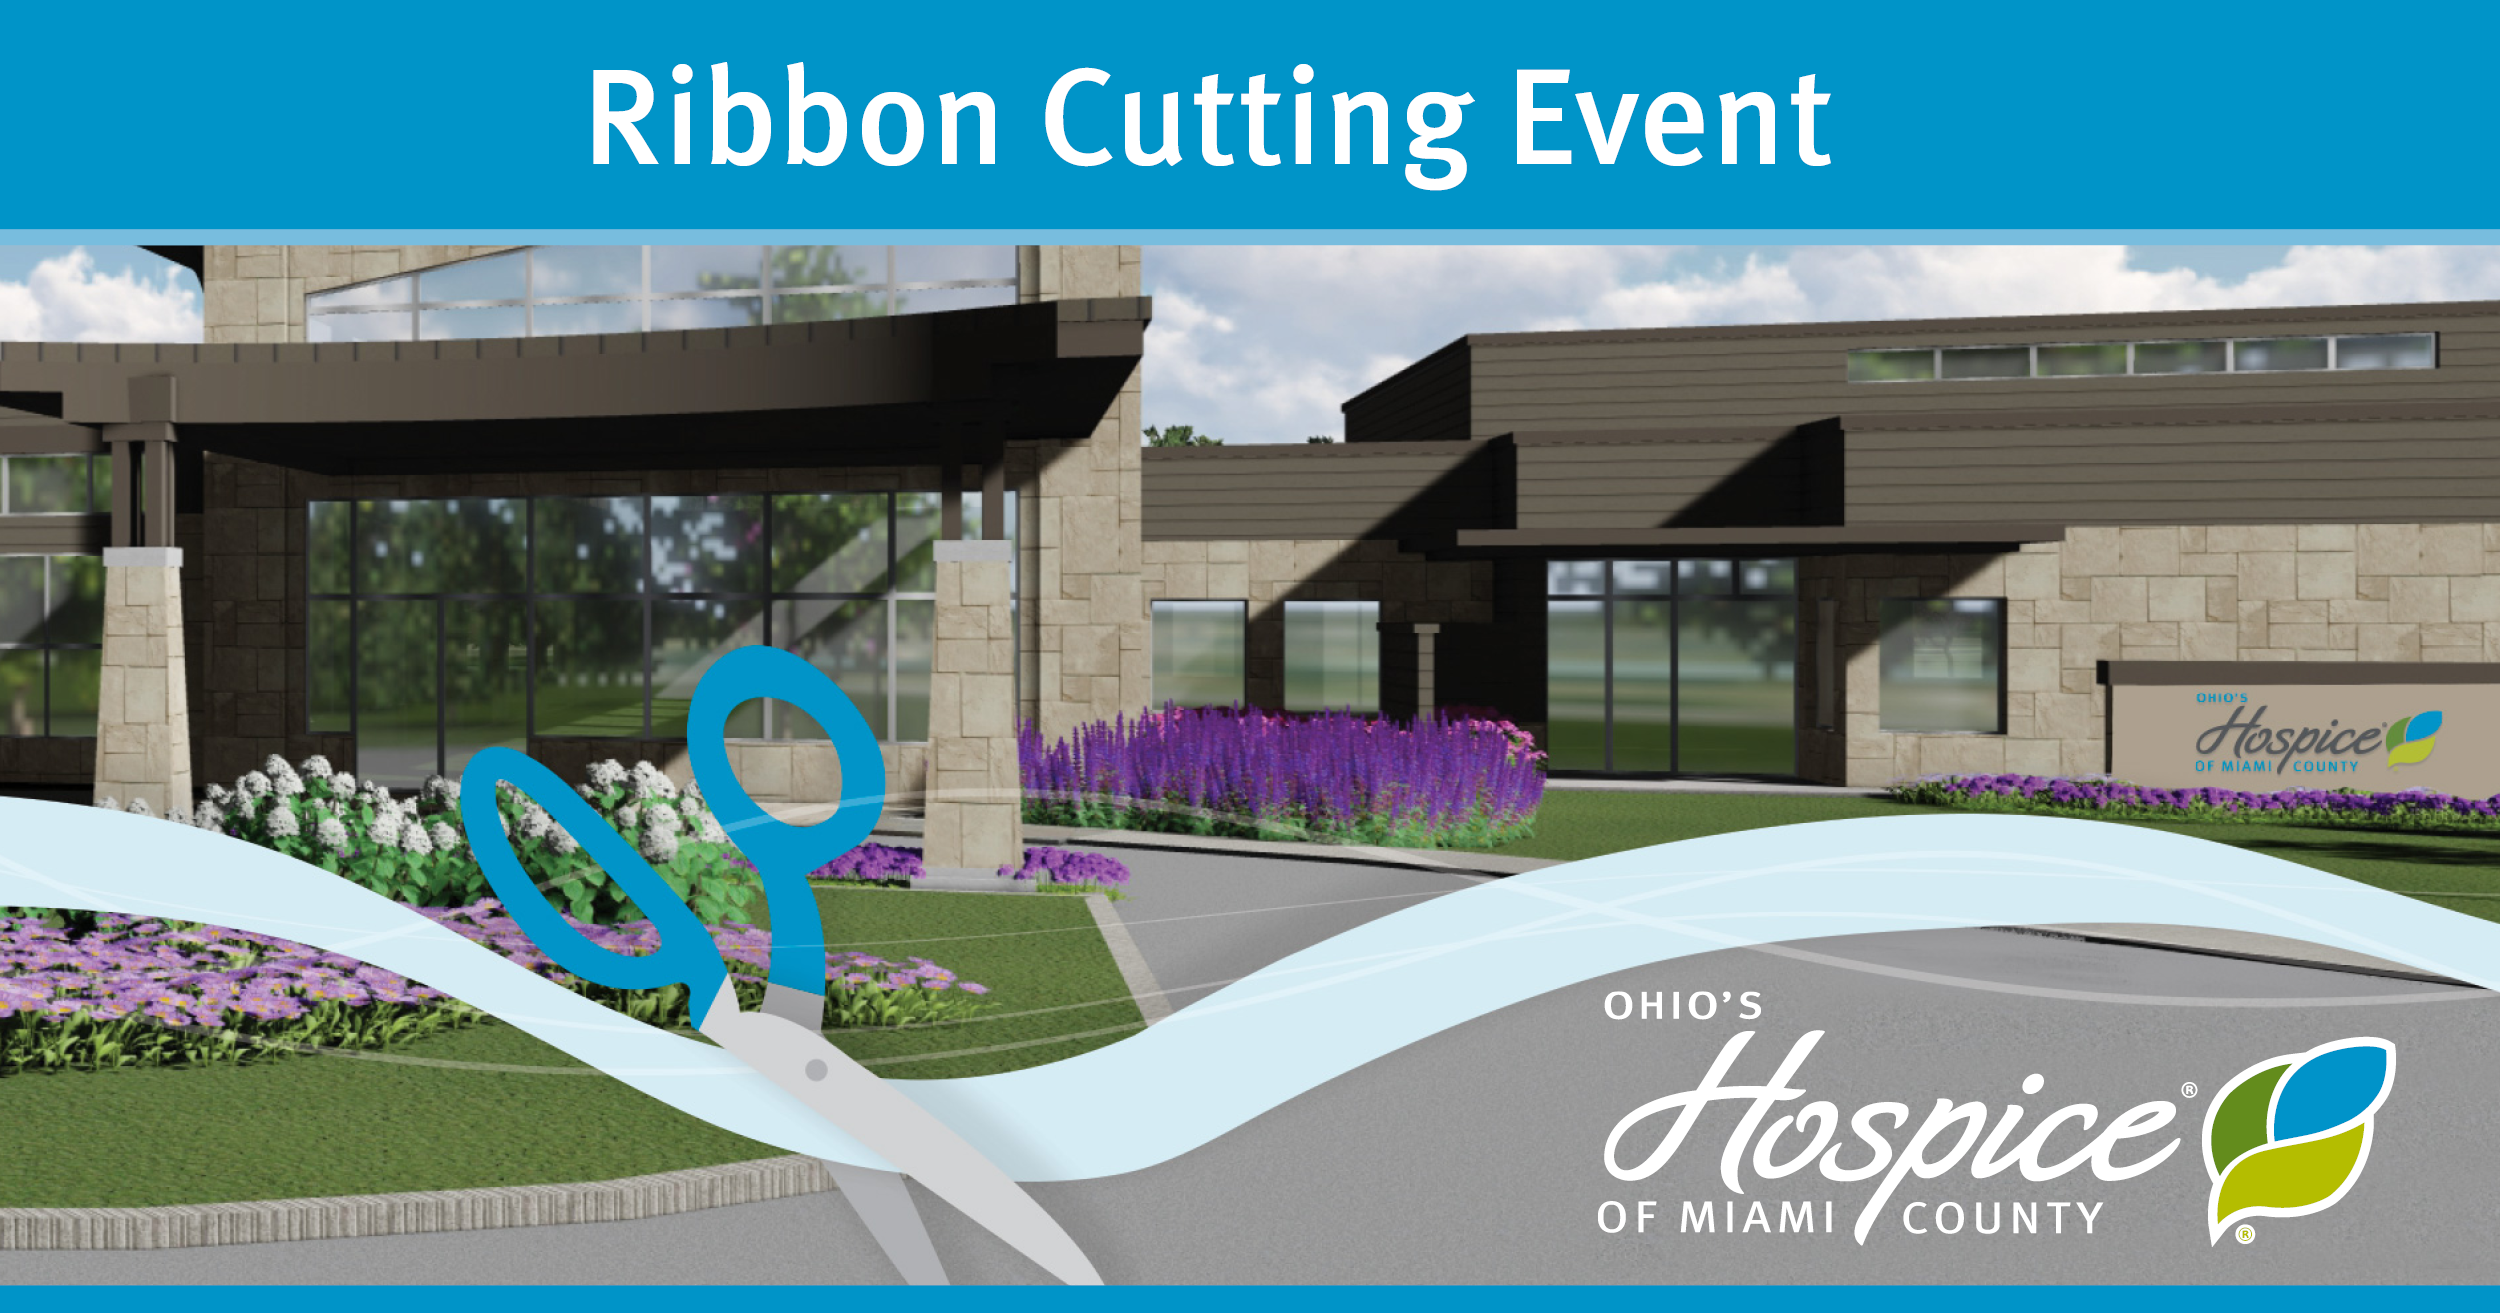 Ohio's Hospice Of Miami County Unveils State-of-the-Art Hospice House At Ribbon Cutting Event